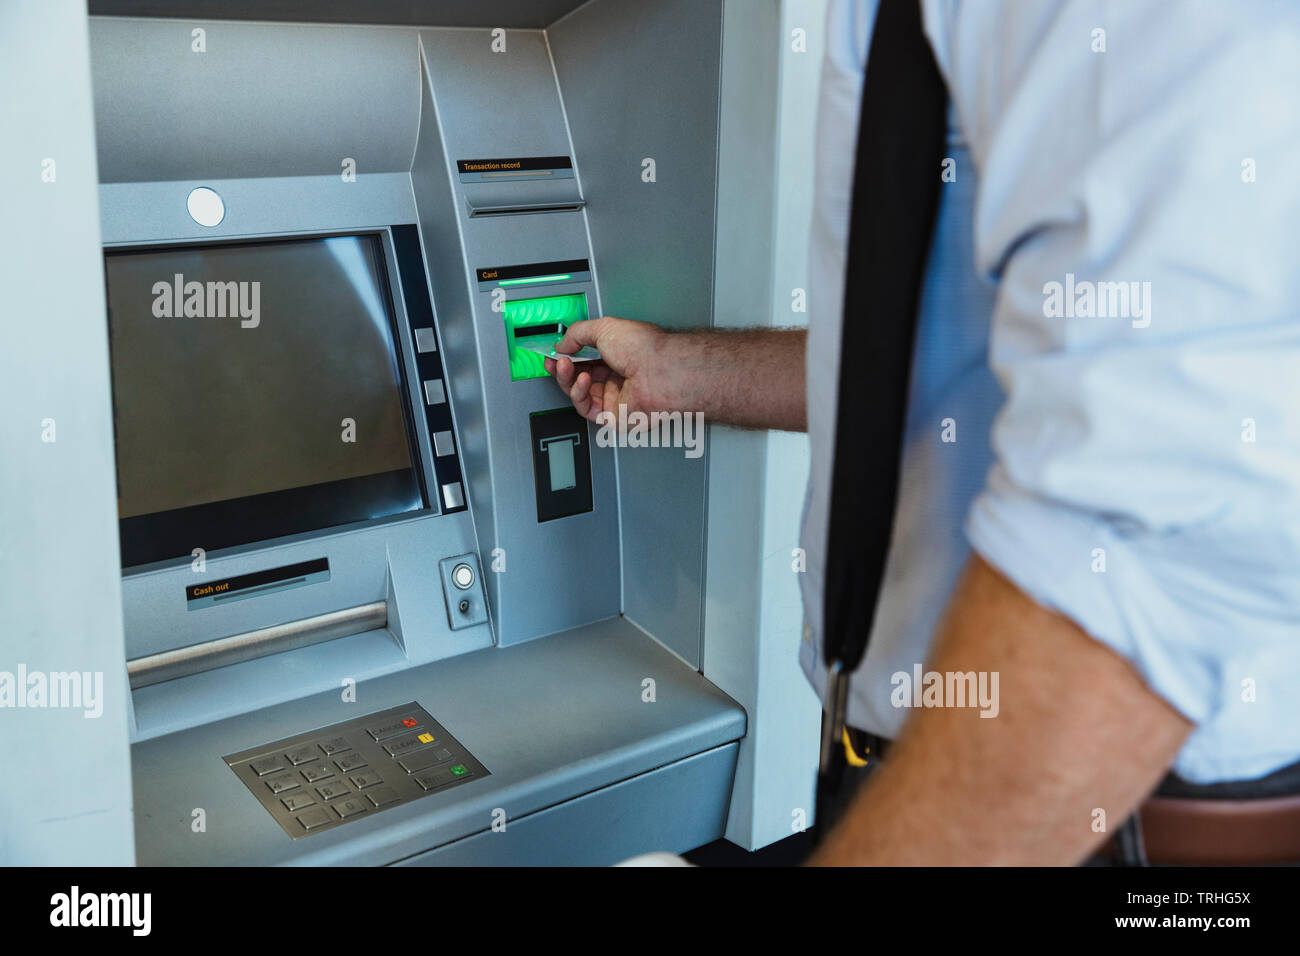 A rear-view close-up shot of an unrecognizable businessman using an ATM machine in Perth Australia, he is inserting his credit card to withdraw money. - Stock Image